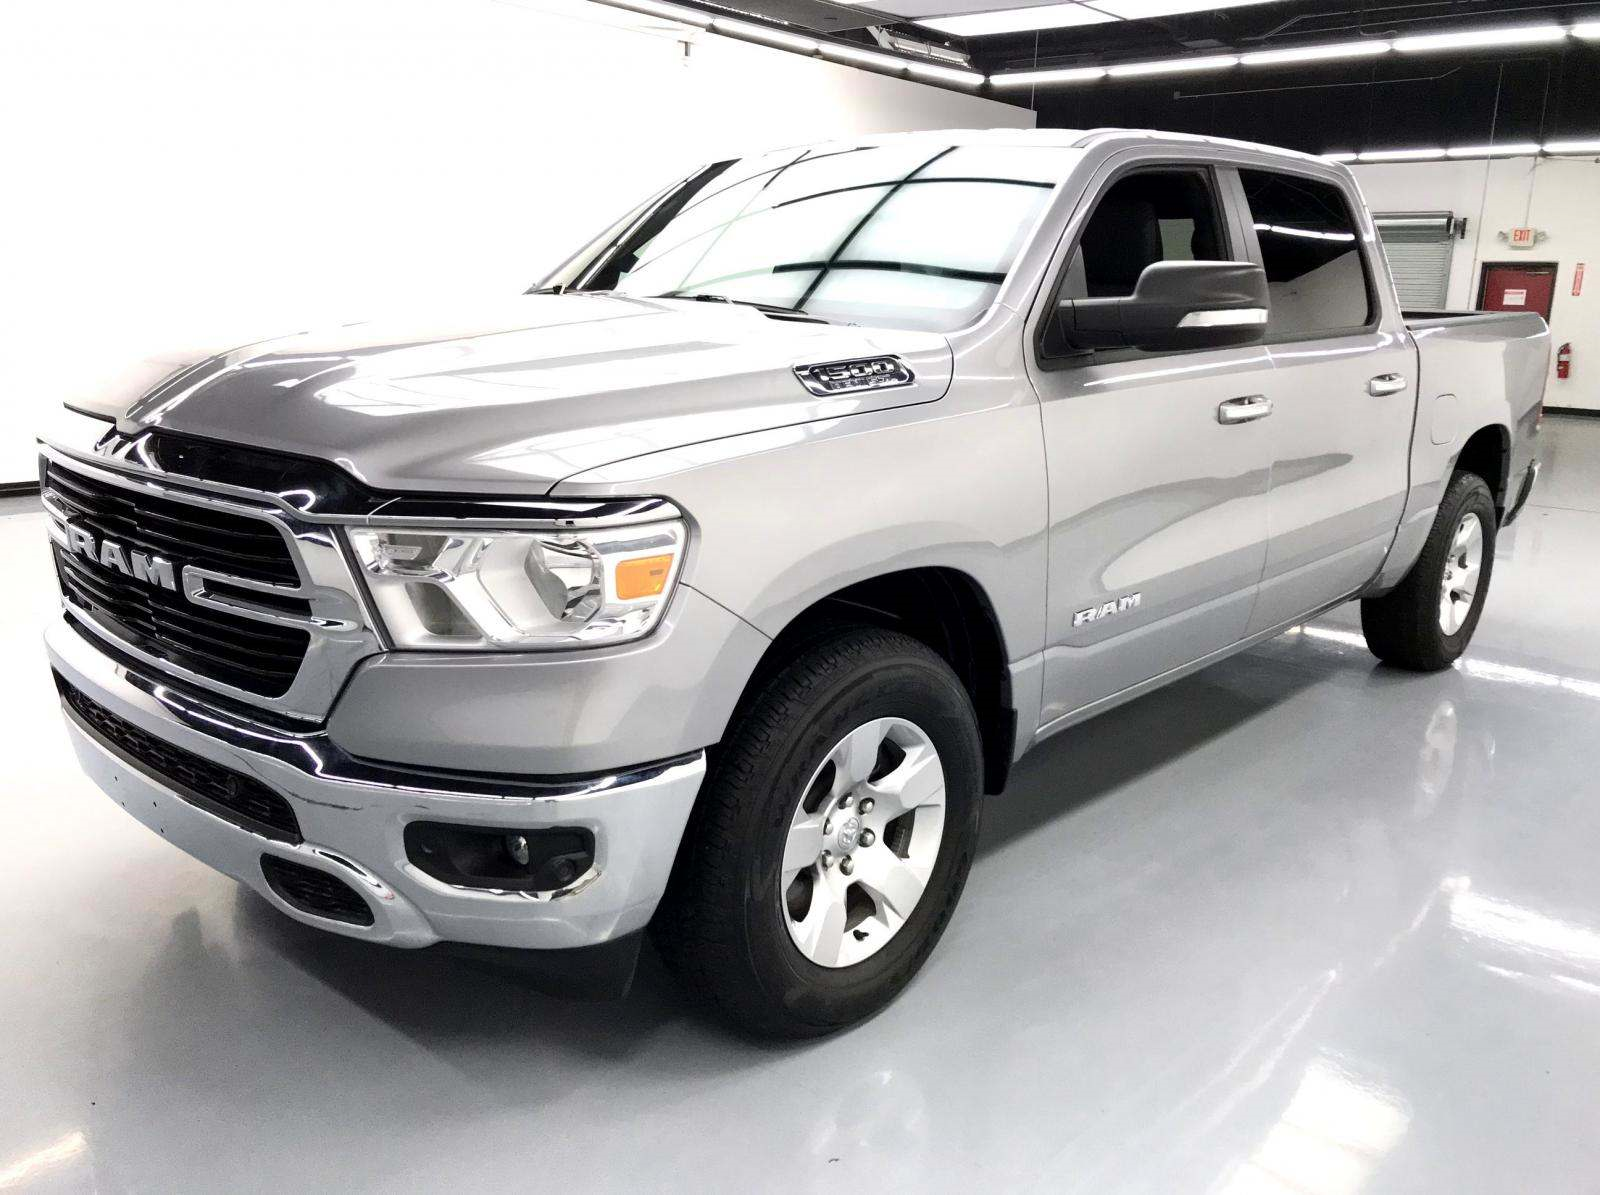 2019 Dodge Ram 1500 35180 00 For Sale In Stafford Tx 77477 Incacar Com In 2020 Chevrolet Equinox Buy Used Cars 2013 Ford Explorer